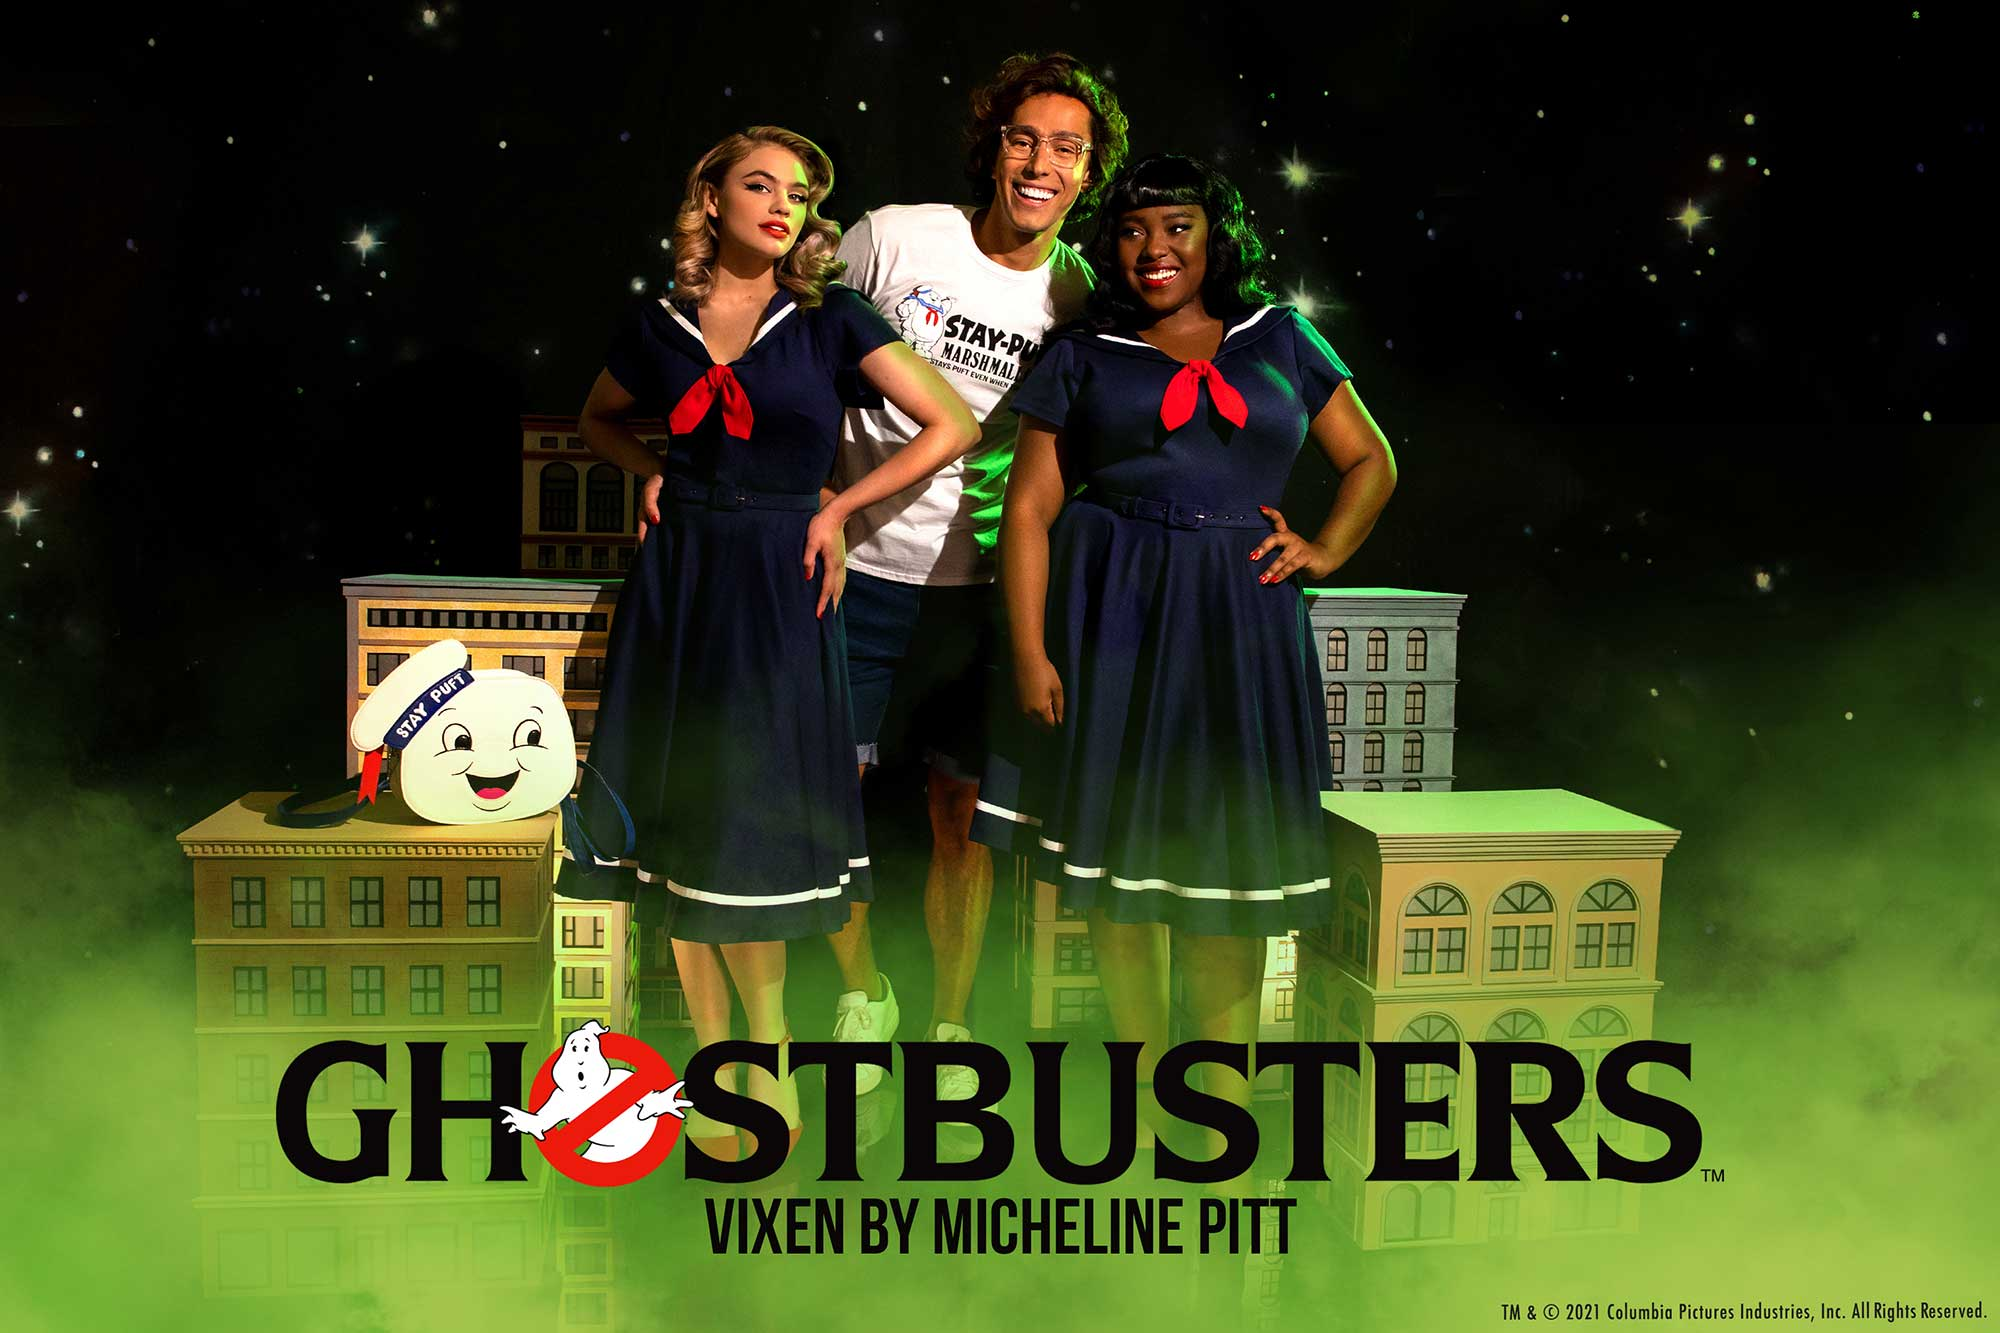 Vixen by Micheline Pitt Ghostbusters clothing